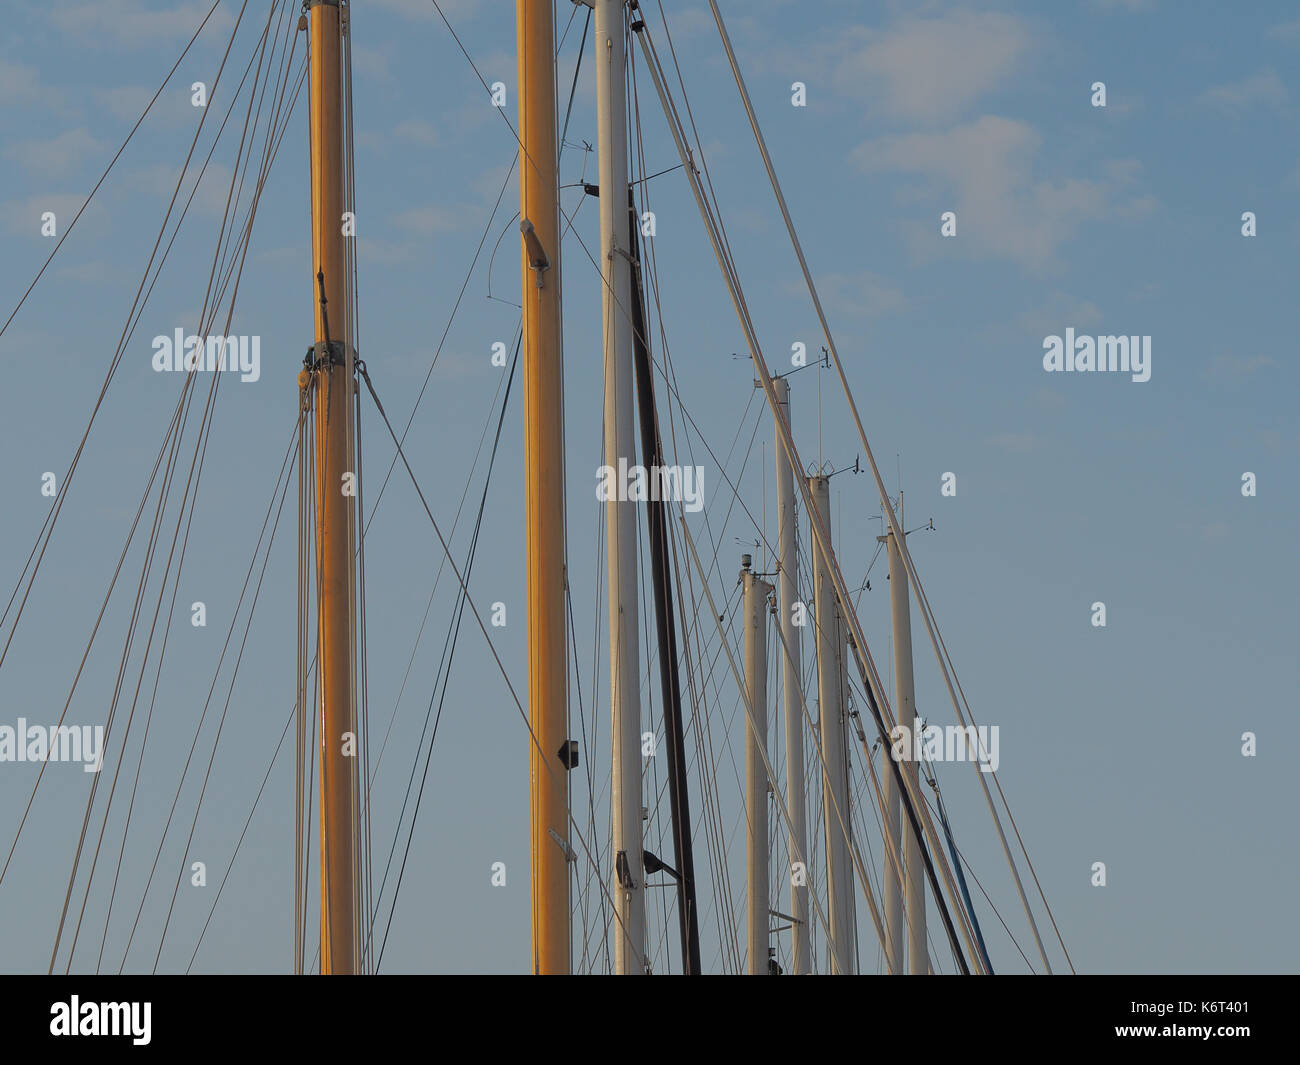 A series of masts of multiple sailboats. - Stock Image